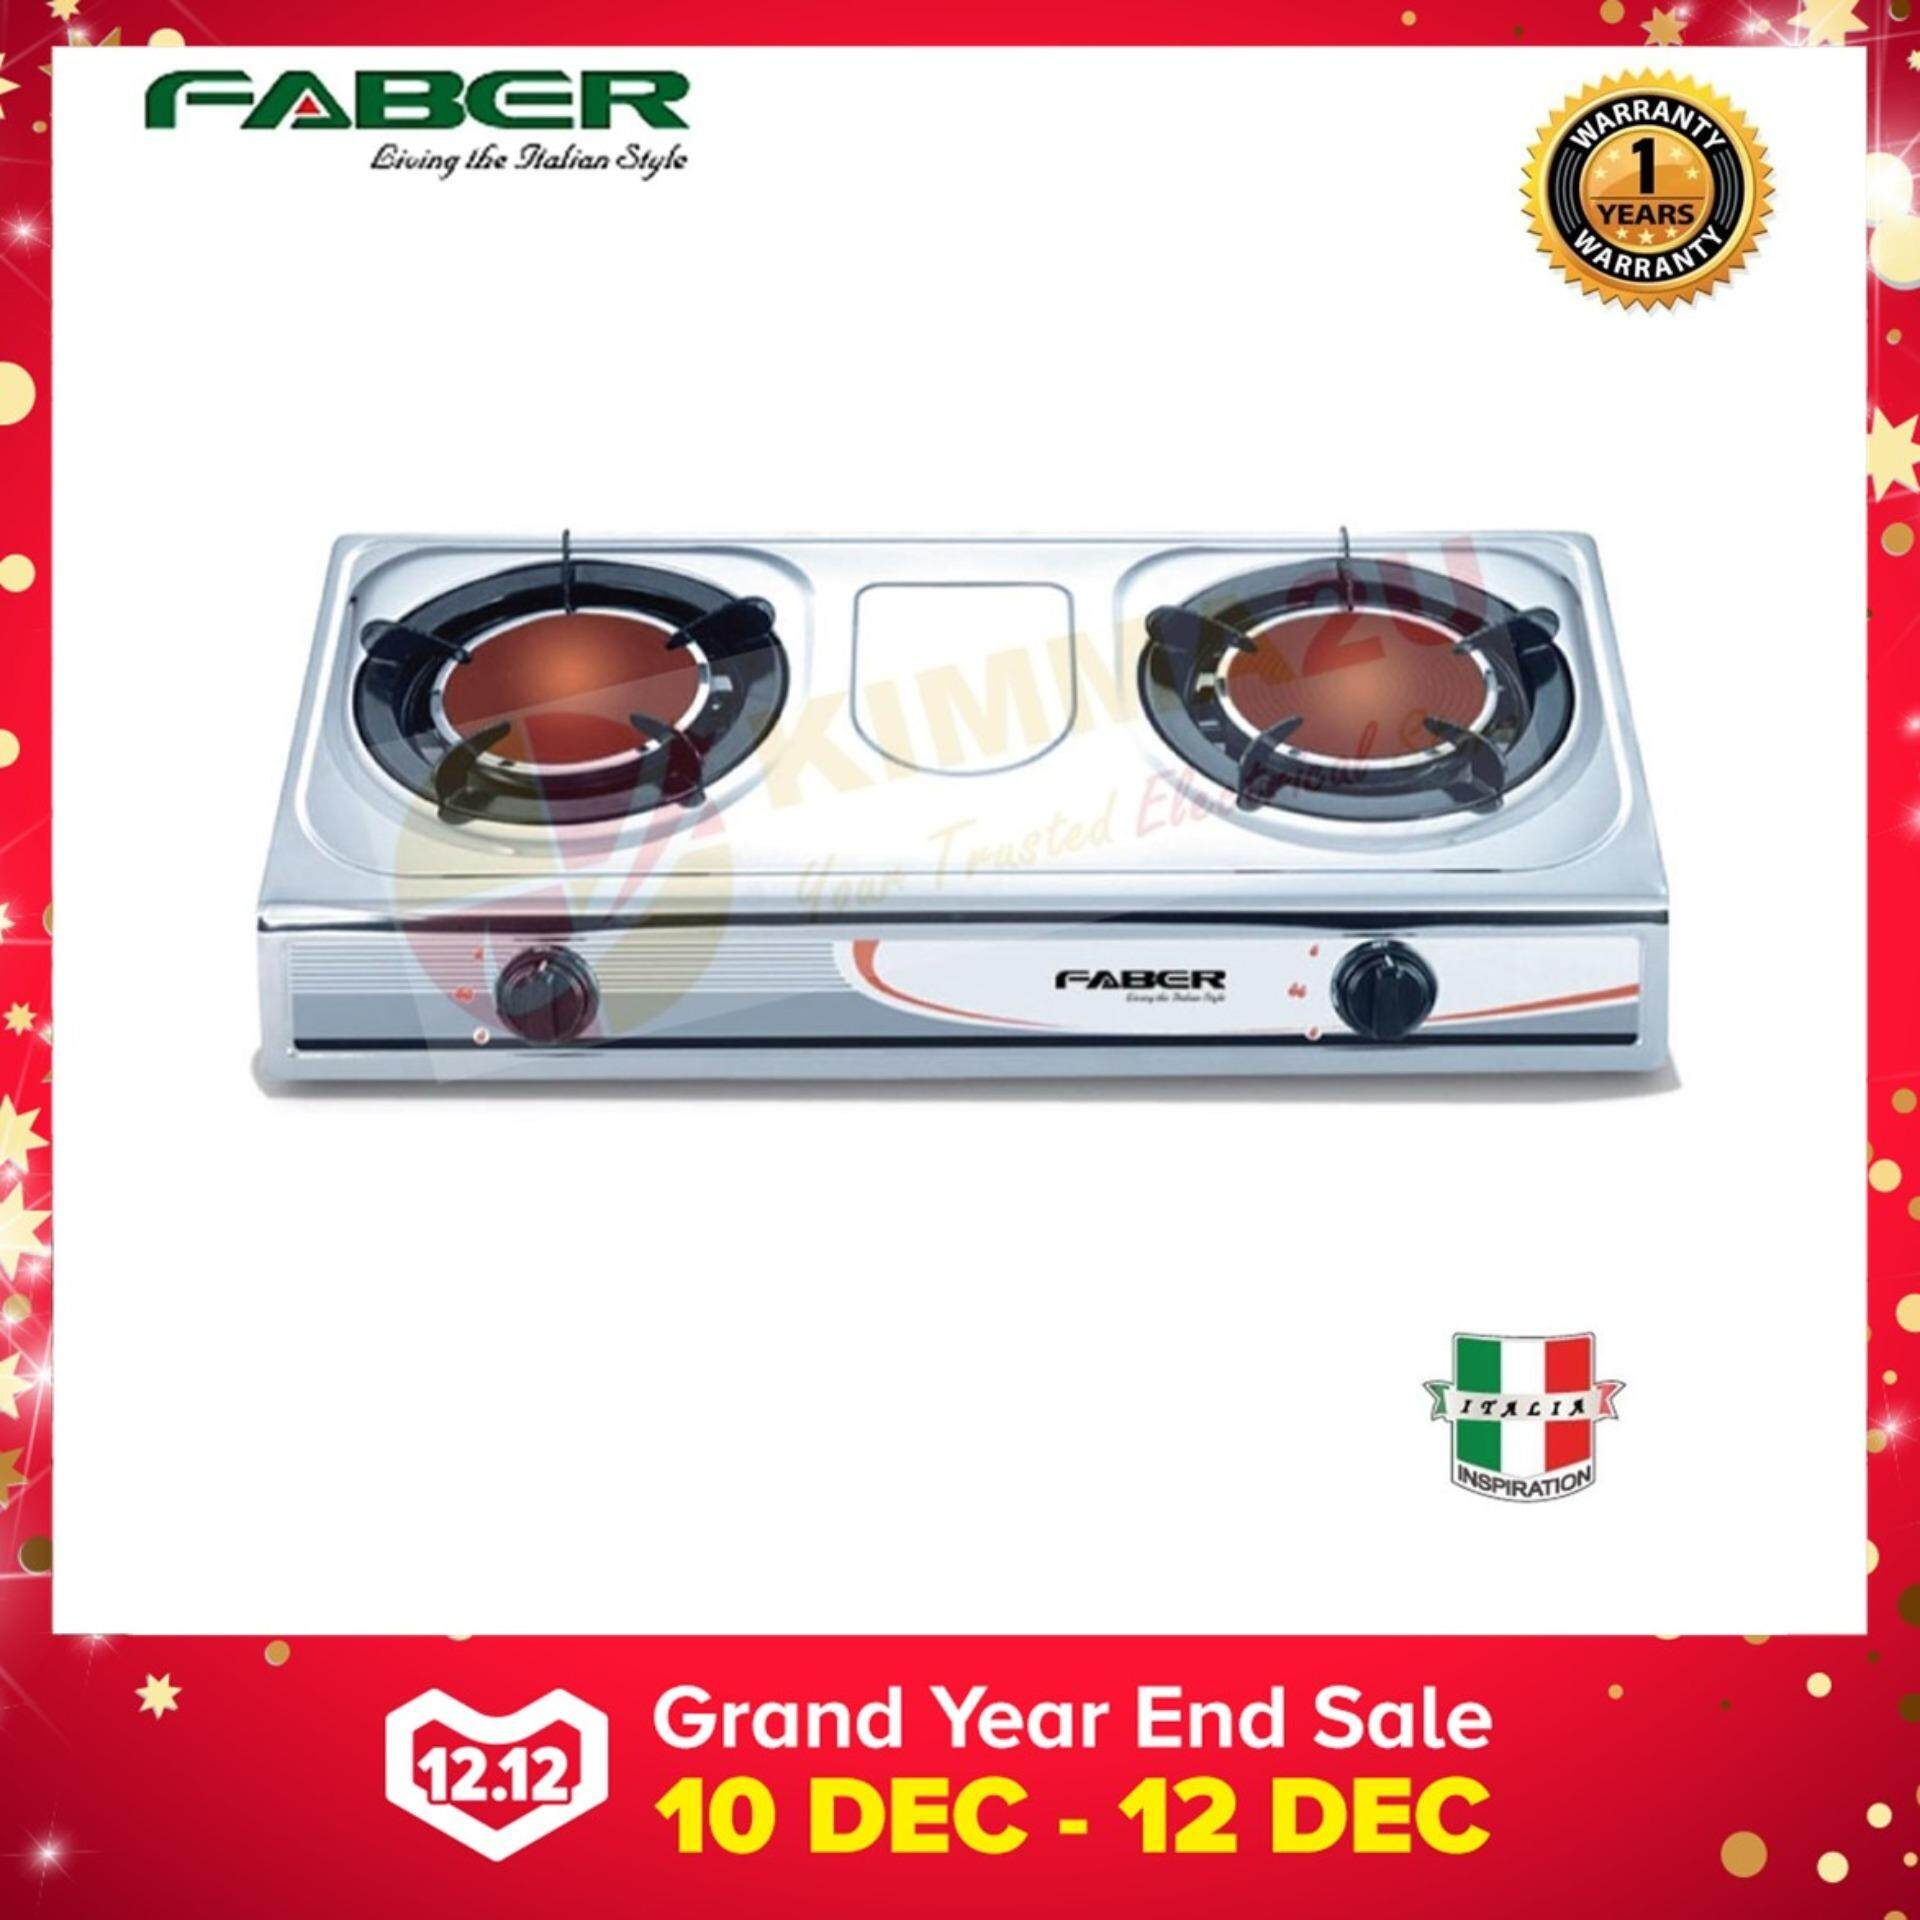 Authorised Dealer Faber Fs5550 2 Burners Stainless Steel Infrared Gas Cooker Lazada